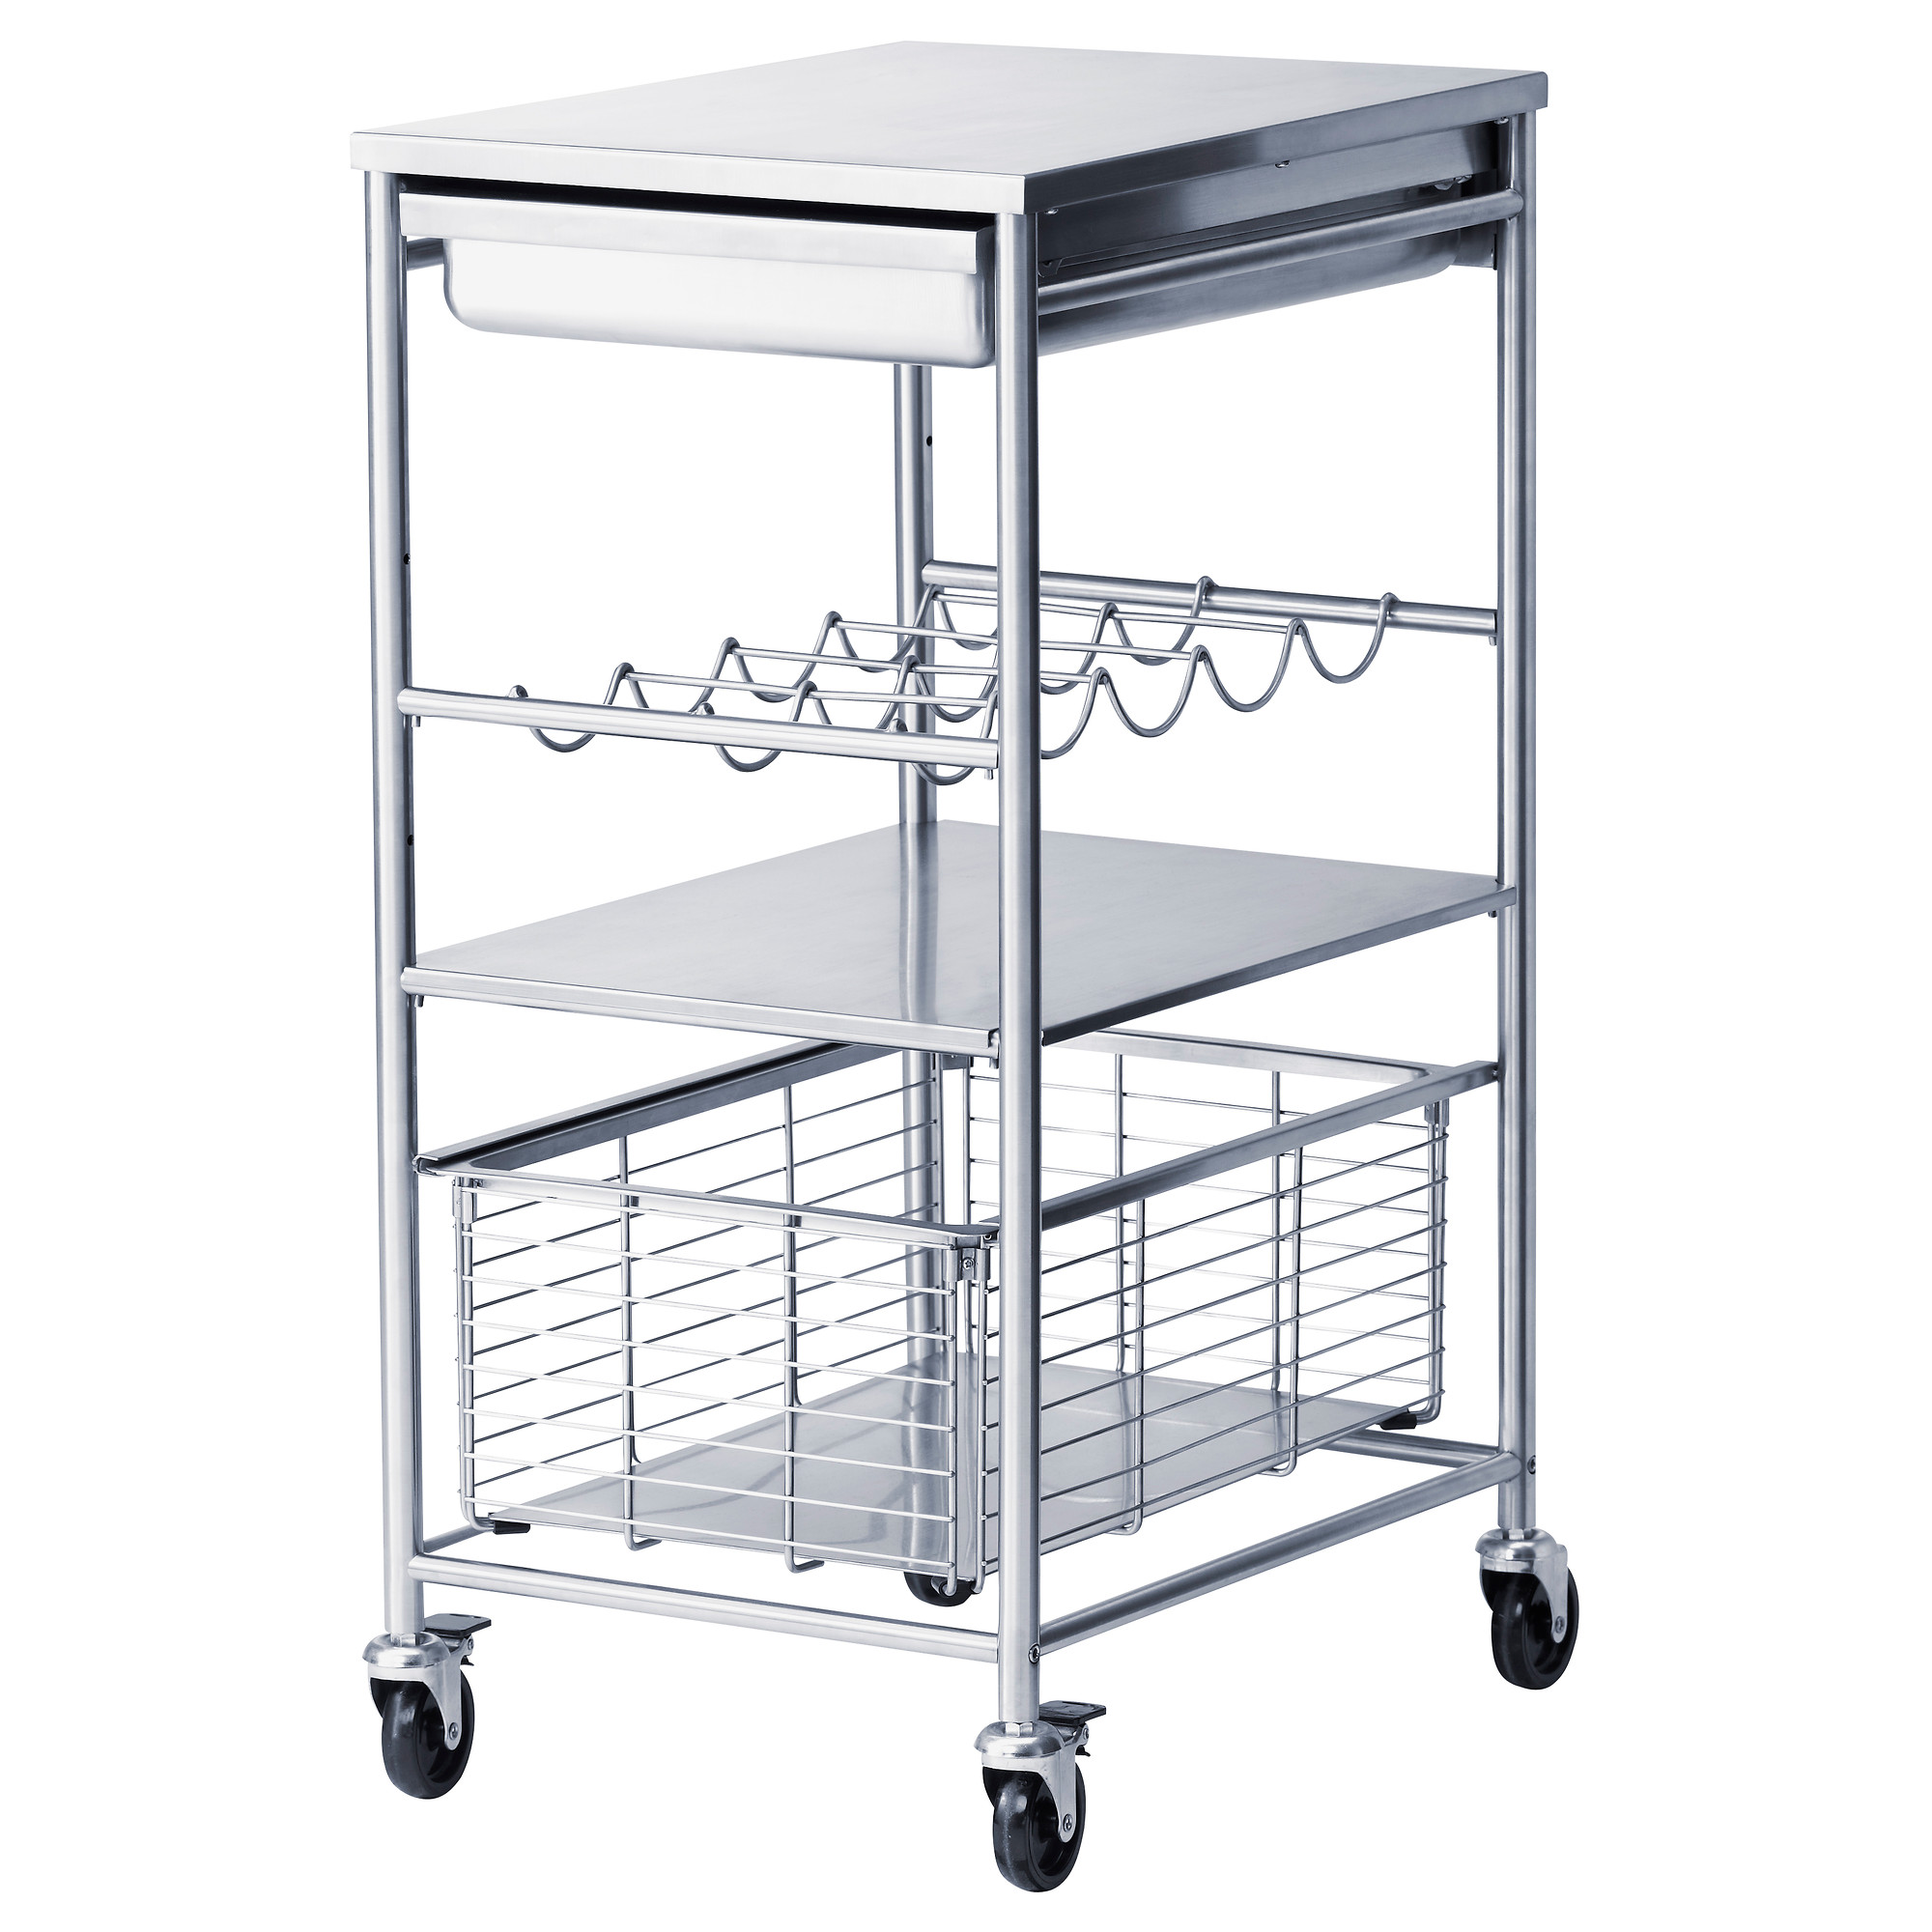 Ikea Kitchen Cart: Set Your Microwave Properly With Compact Microwave Carts